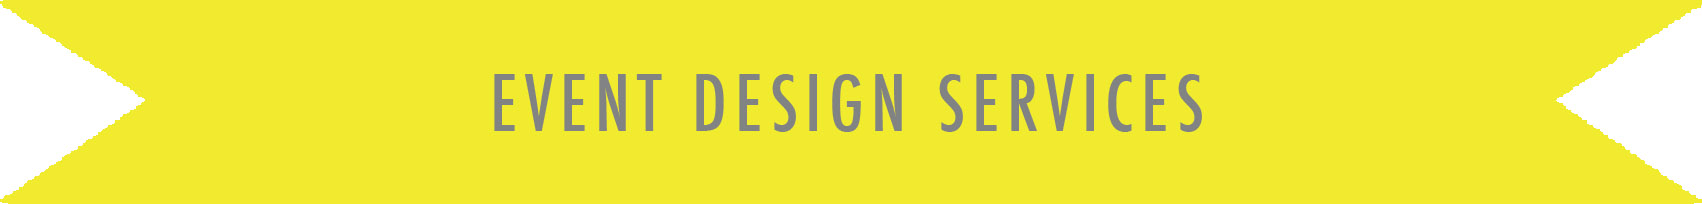 EventDesignServicesBanner-Yellow.jpg